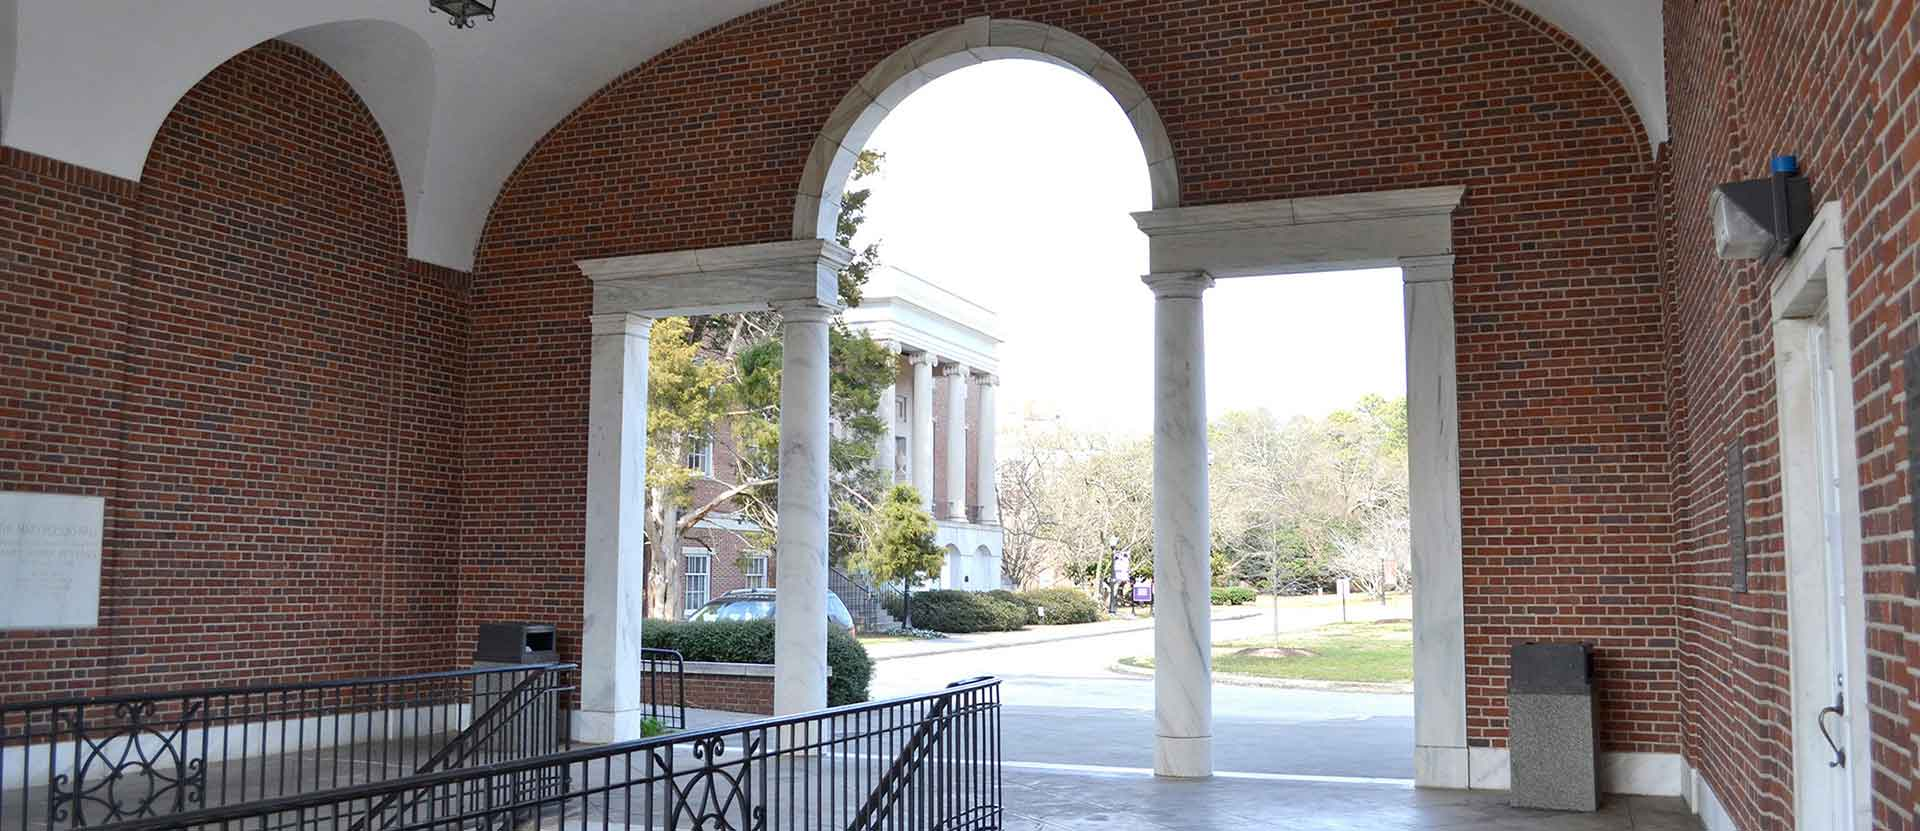 View of Candler building from inside the Loggia.